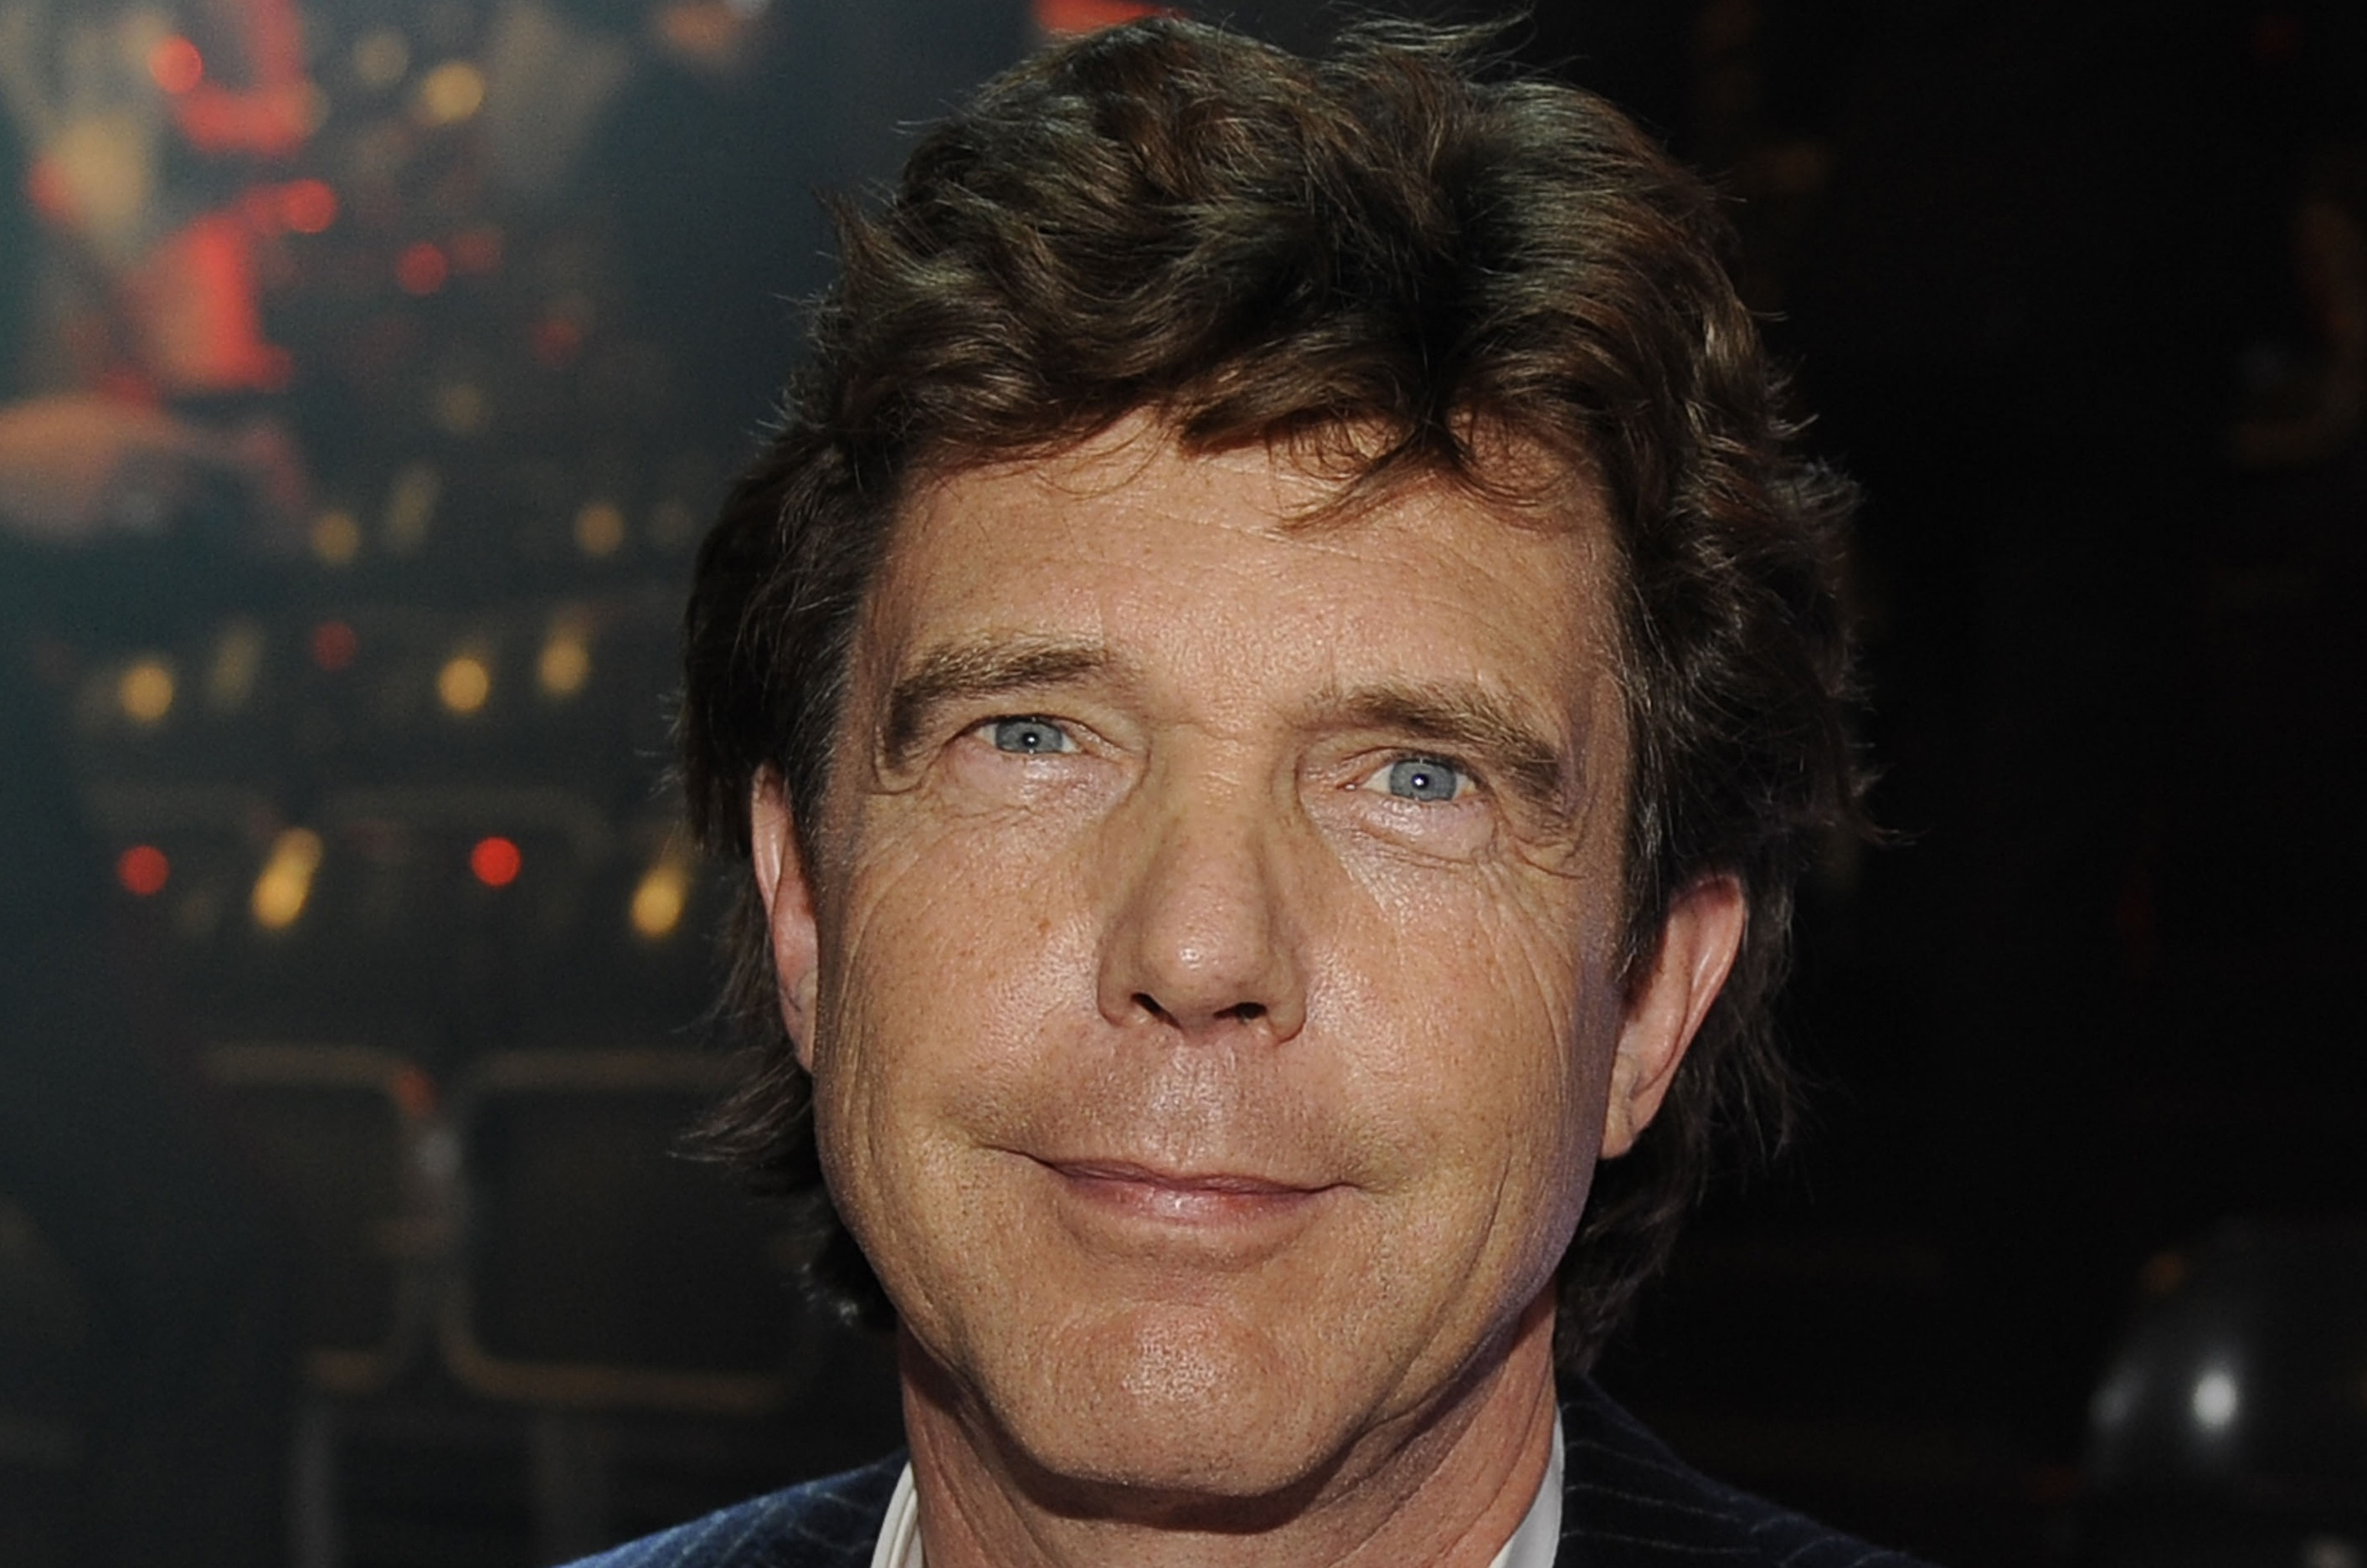 Finale voice holland ms 110129 john de mol1